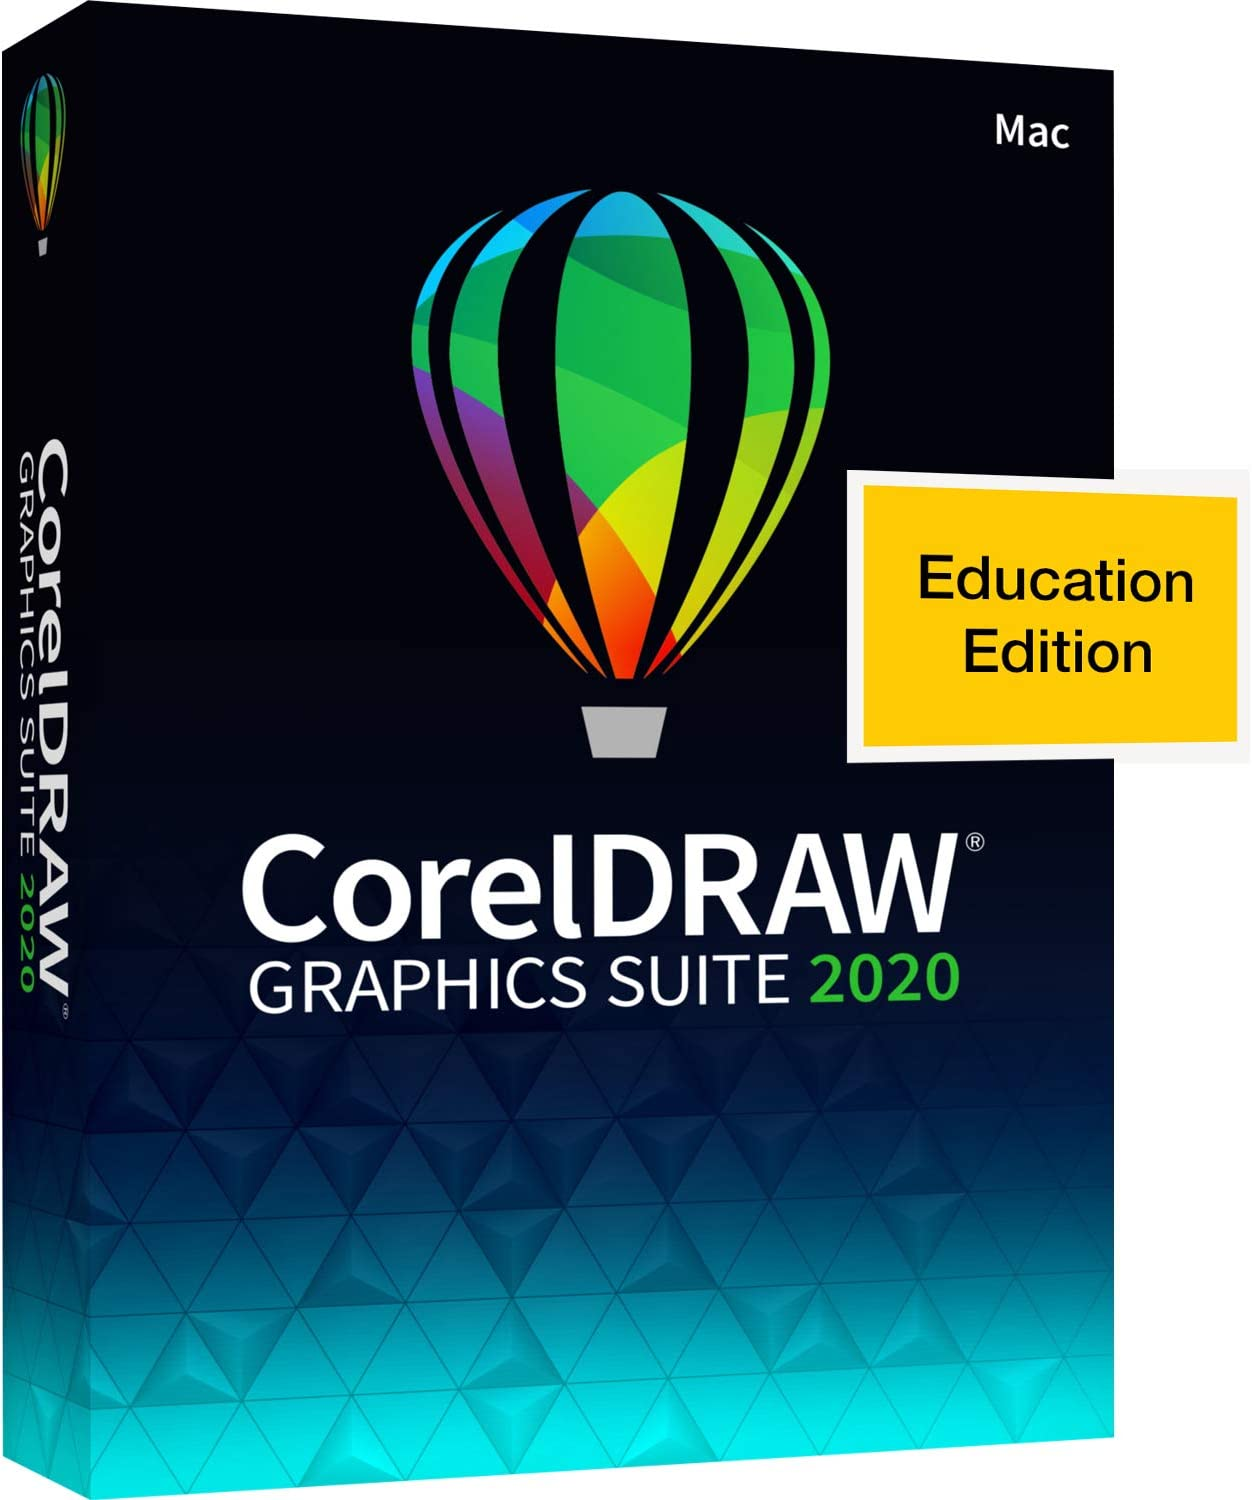 CorelDRAW Graphics Suite 2020 At the price Graphic Photo and Design Free Shipping New Vecto